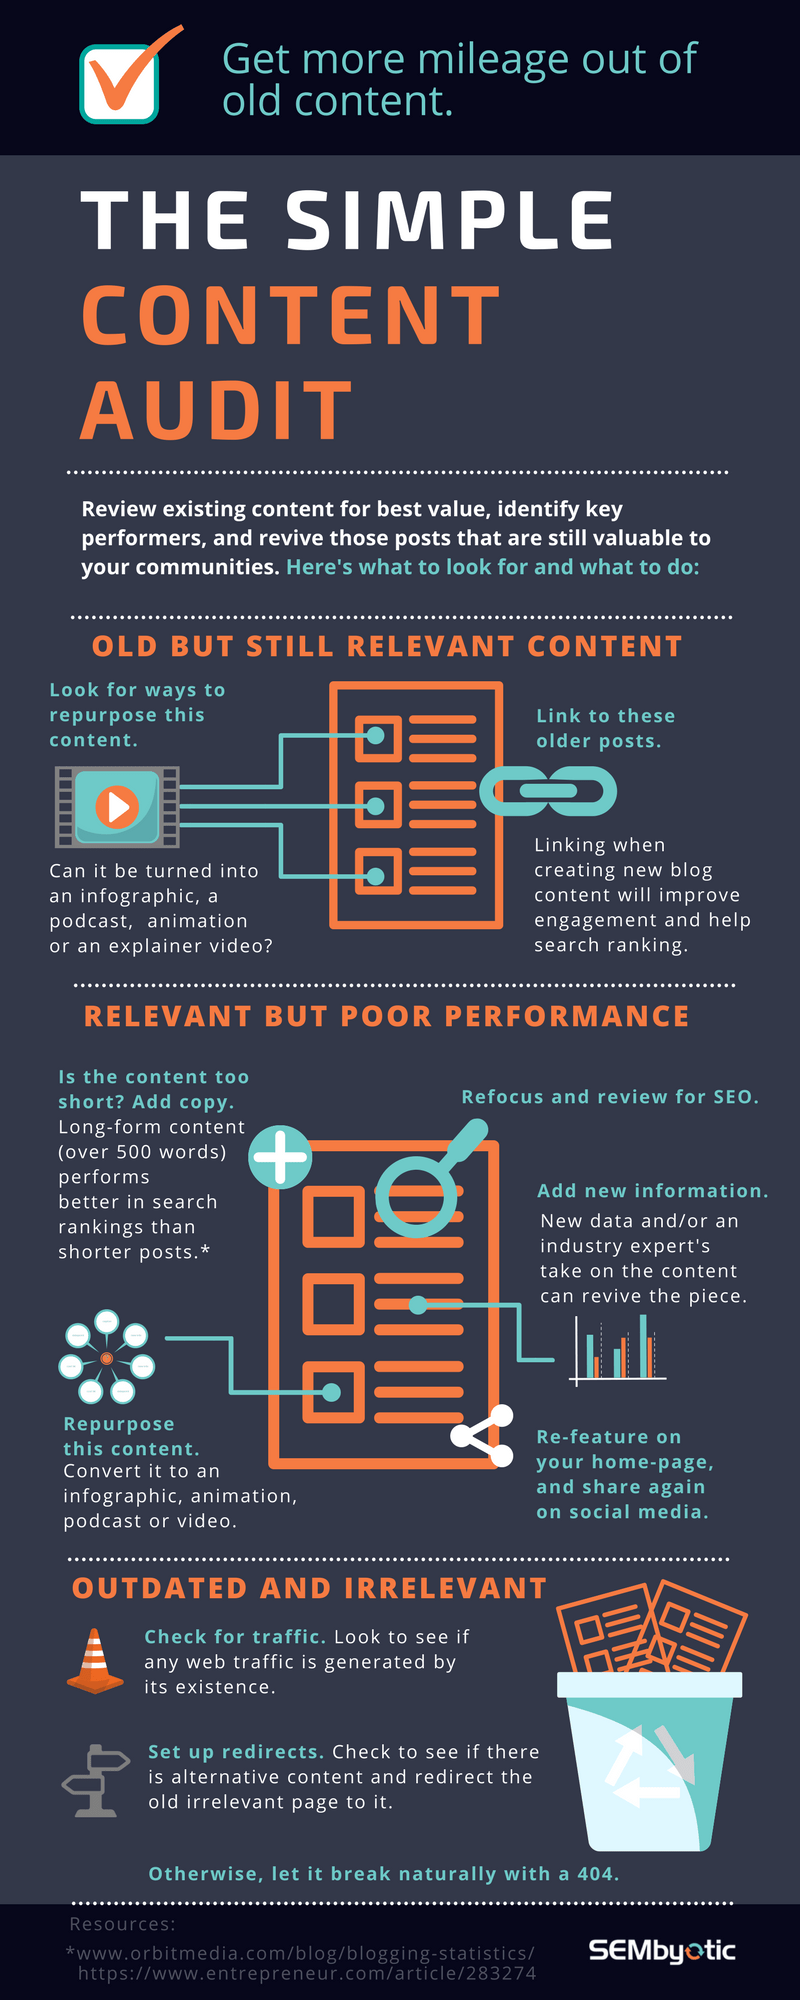 Getting New Value From Old Blog Content [INFOGRAPHIC]